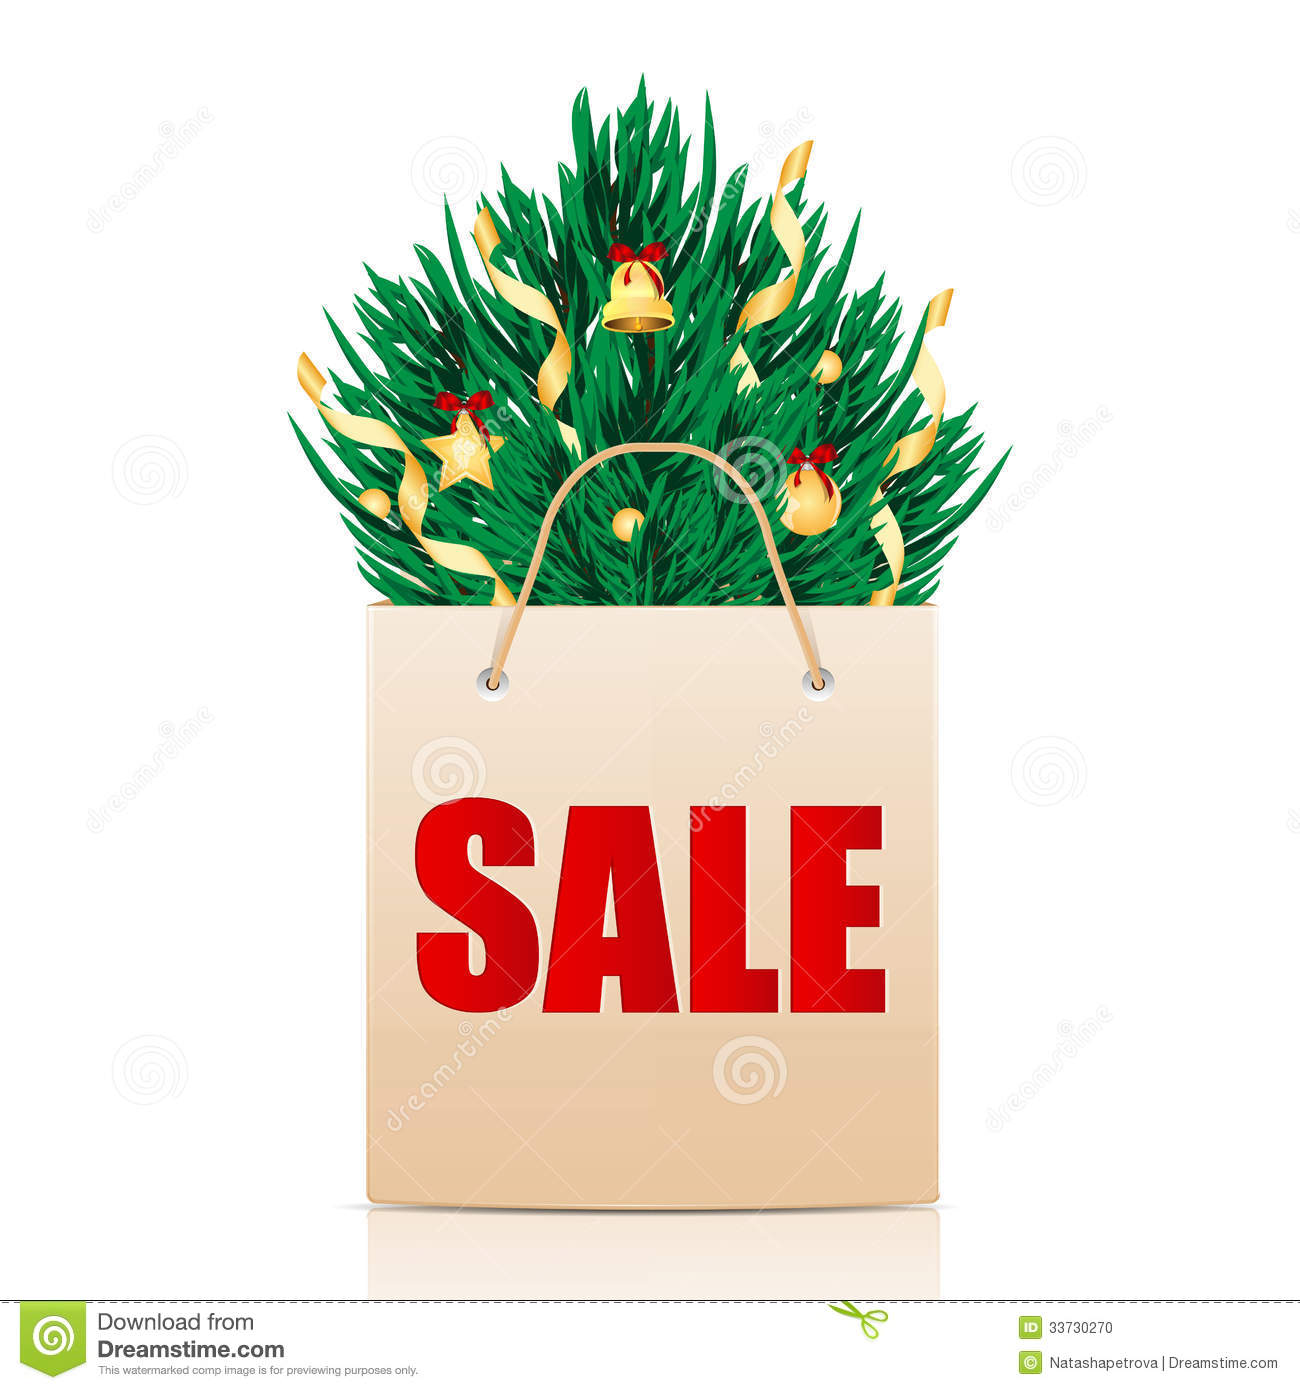 Seasonal christmas sale stock photo image 33730270 for Christmas sale items